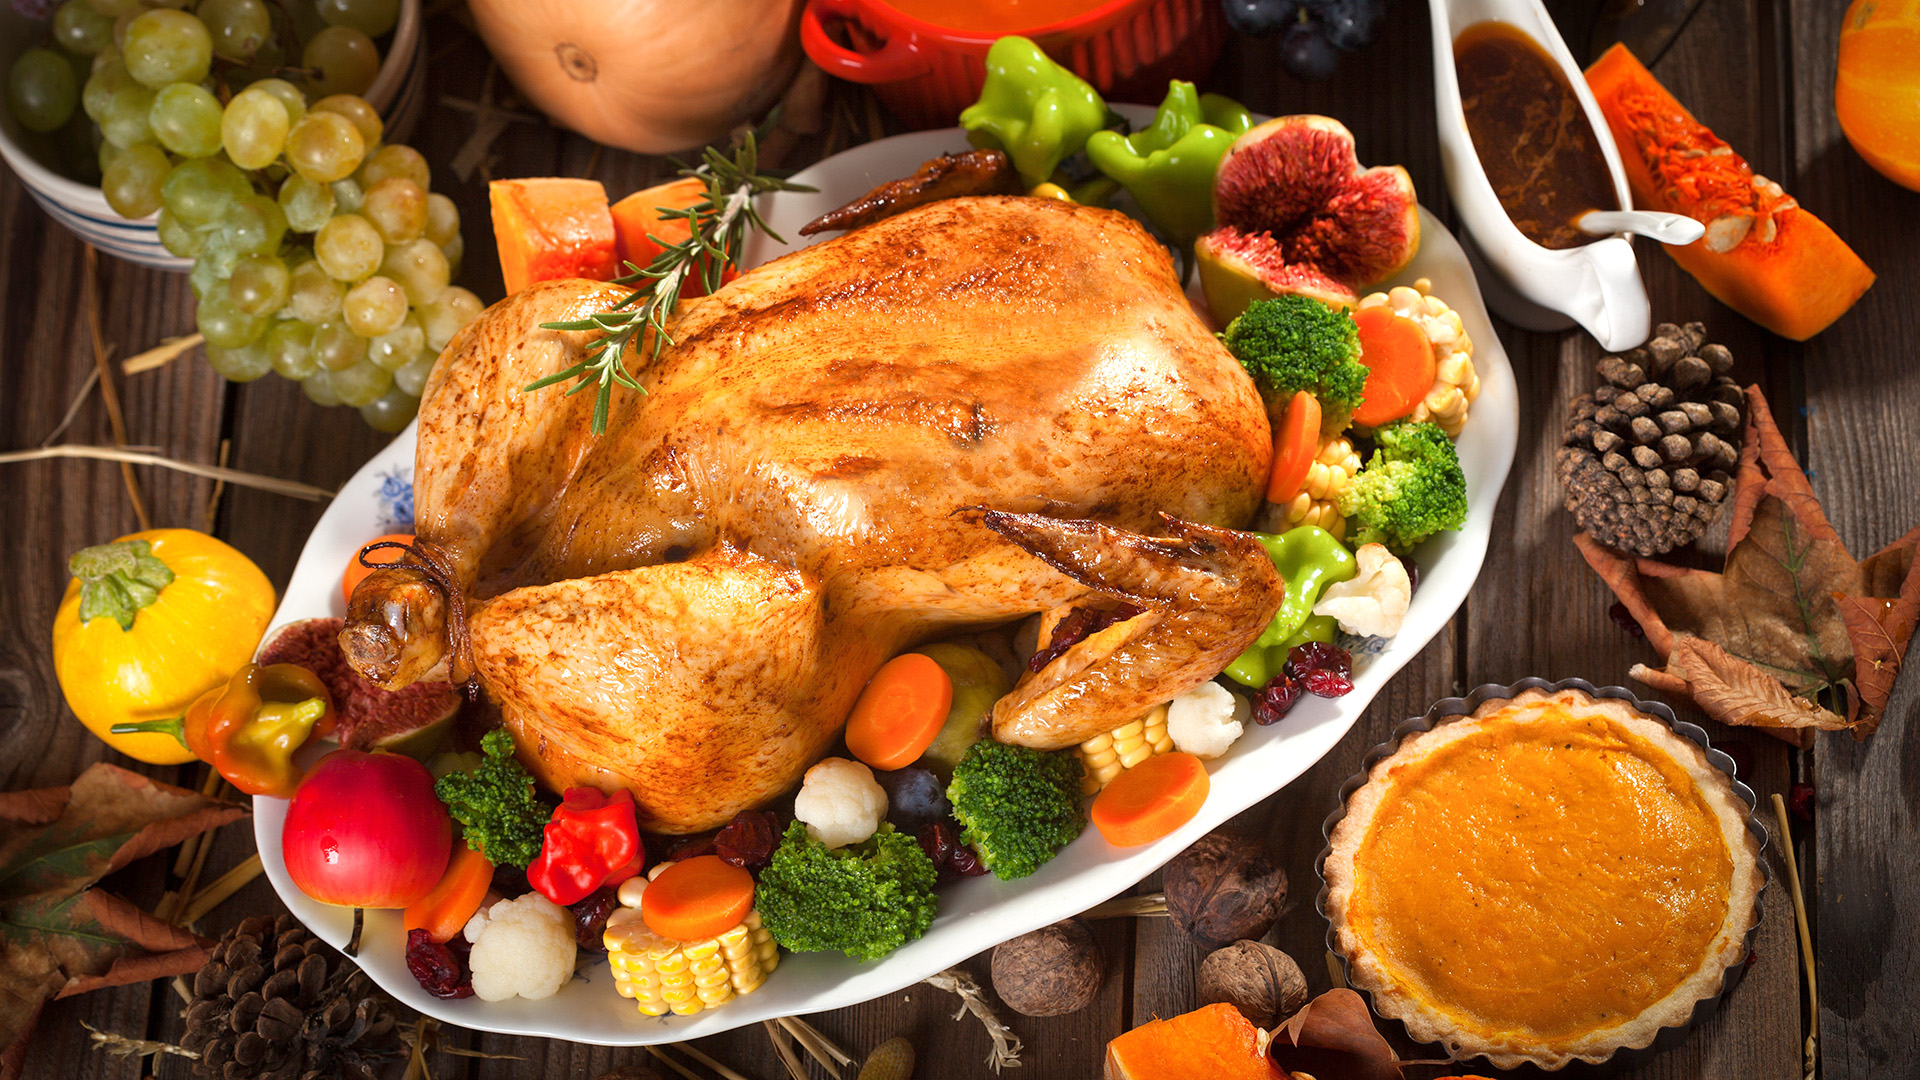 What Is In Turkey That Makes You Sleepy The Truth About Tryptophan